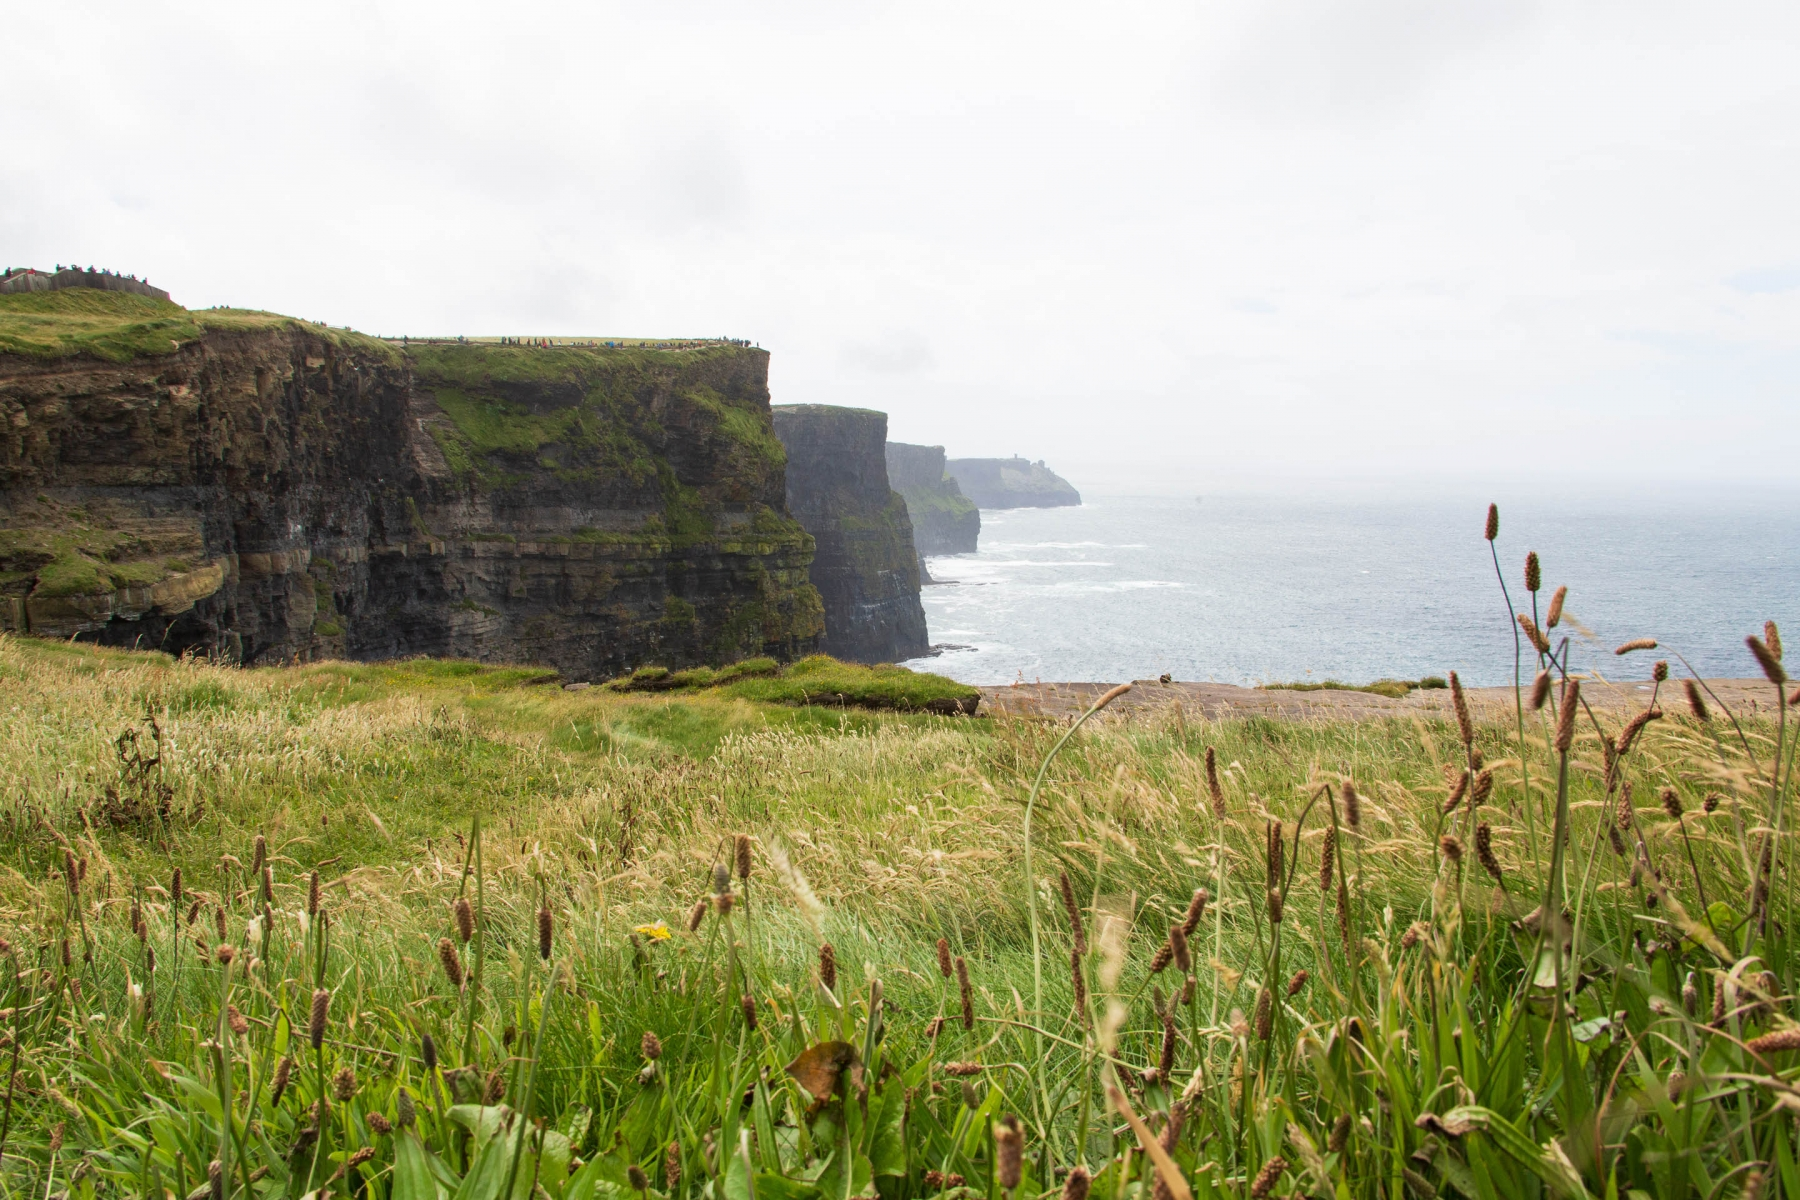 If you are visiting Cliffs of Moher, go early as it does get super crowded.